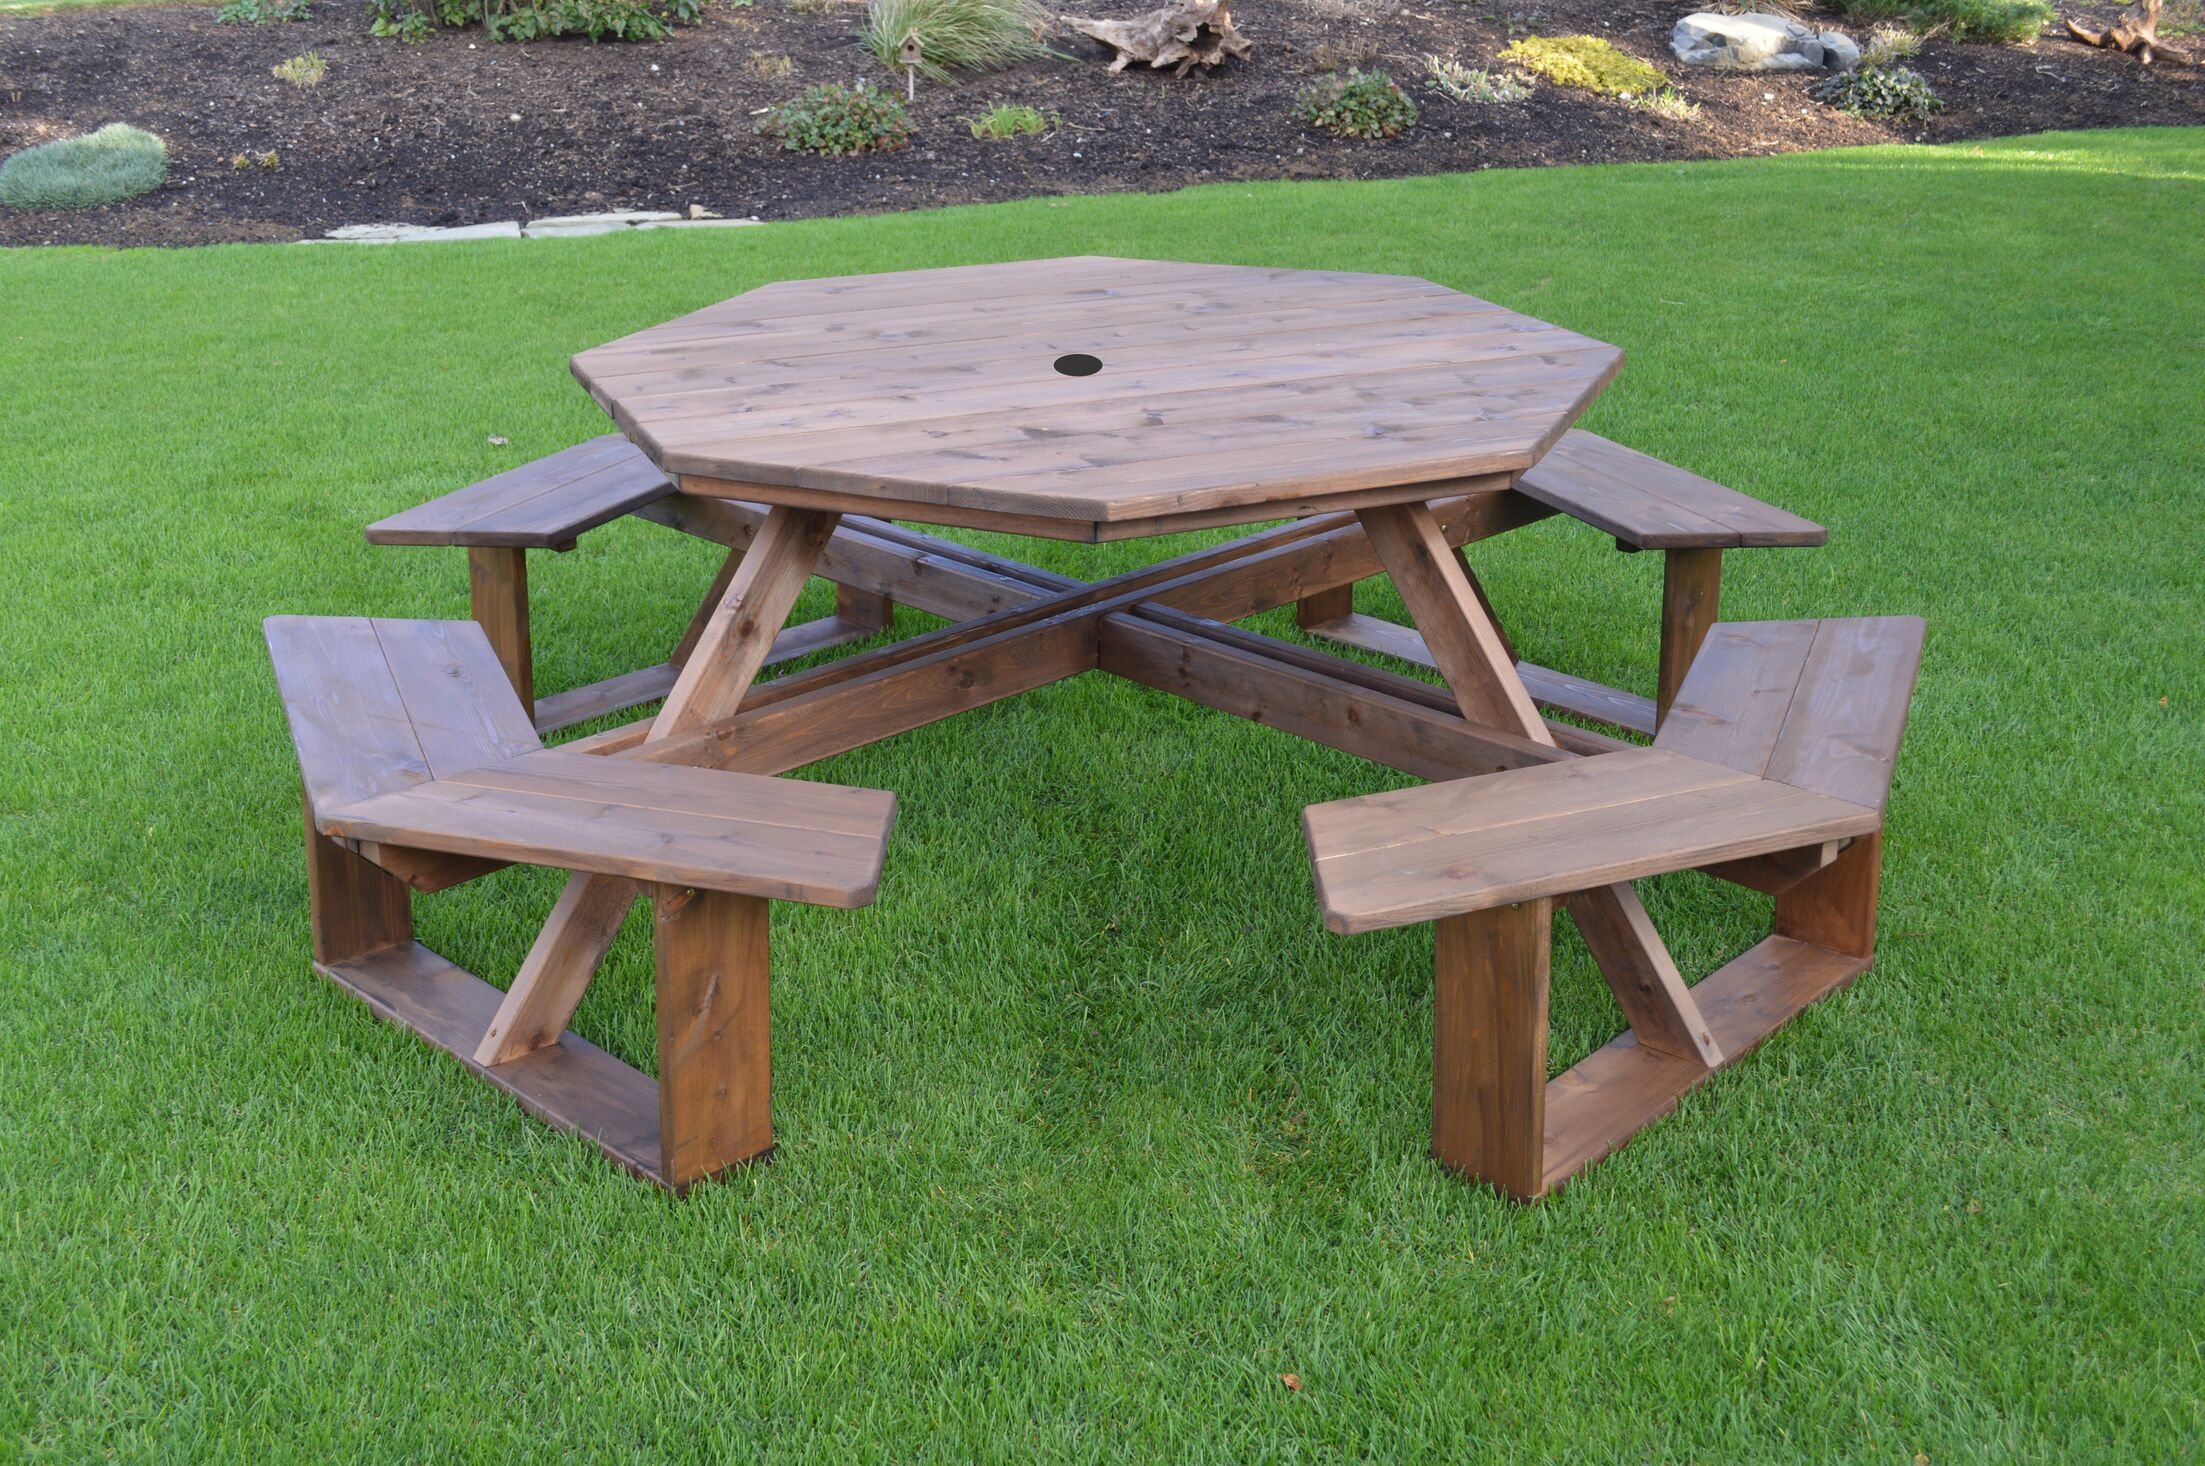 Sirna Wooden Picnic Table Color: Gray Stain